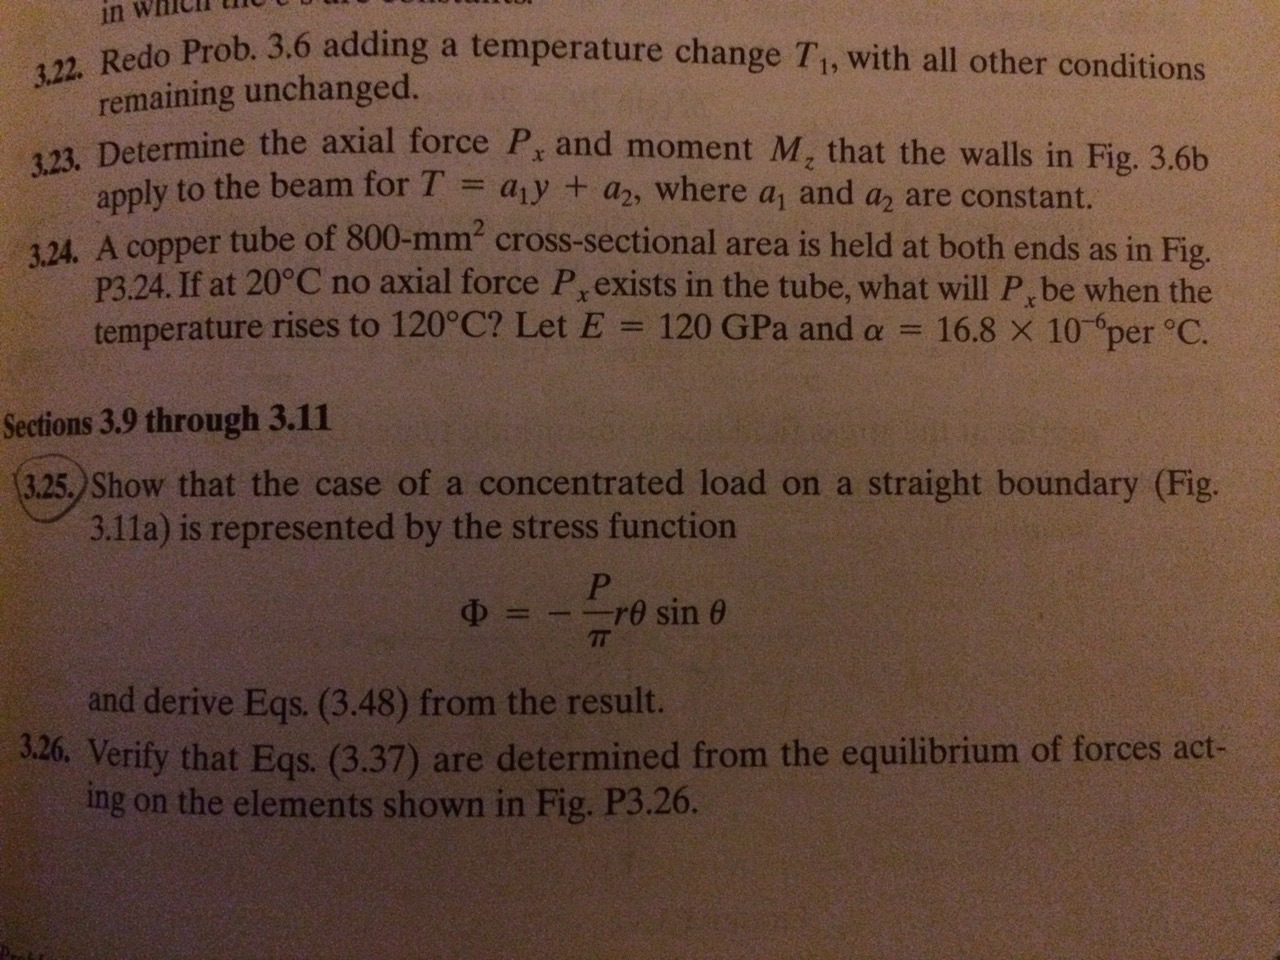 Q 25 from the book( advanced mechanics of materials and applied elasticity  (5th edition))